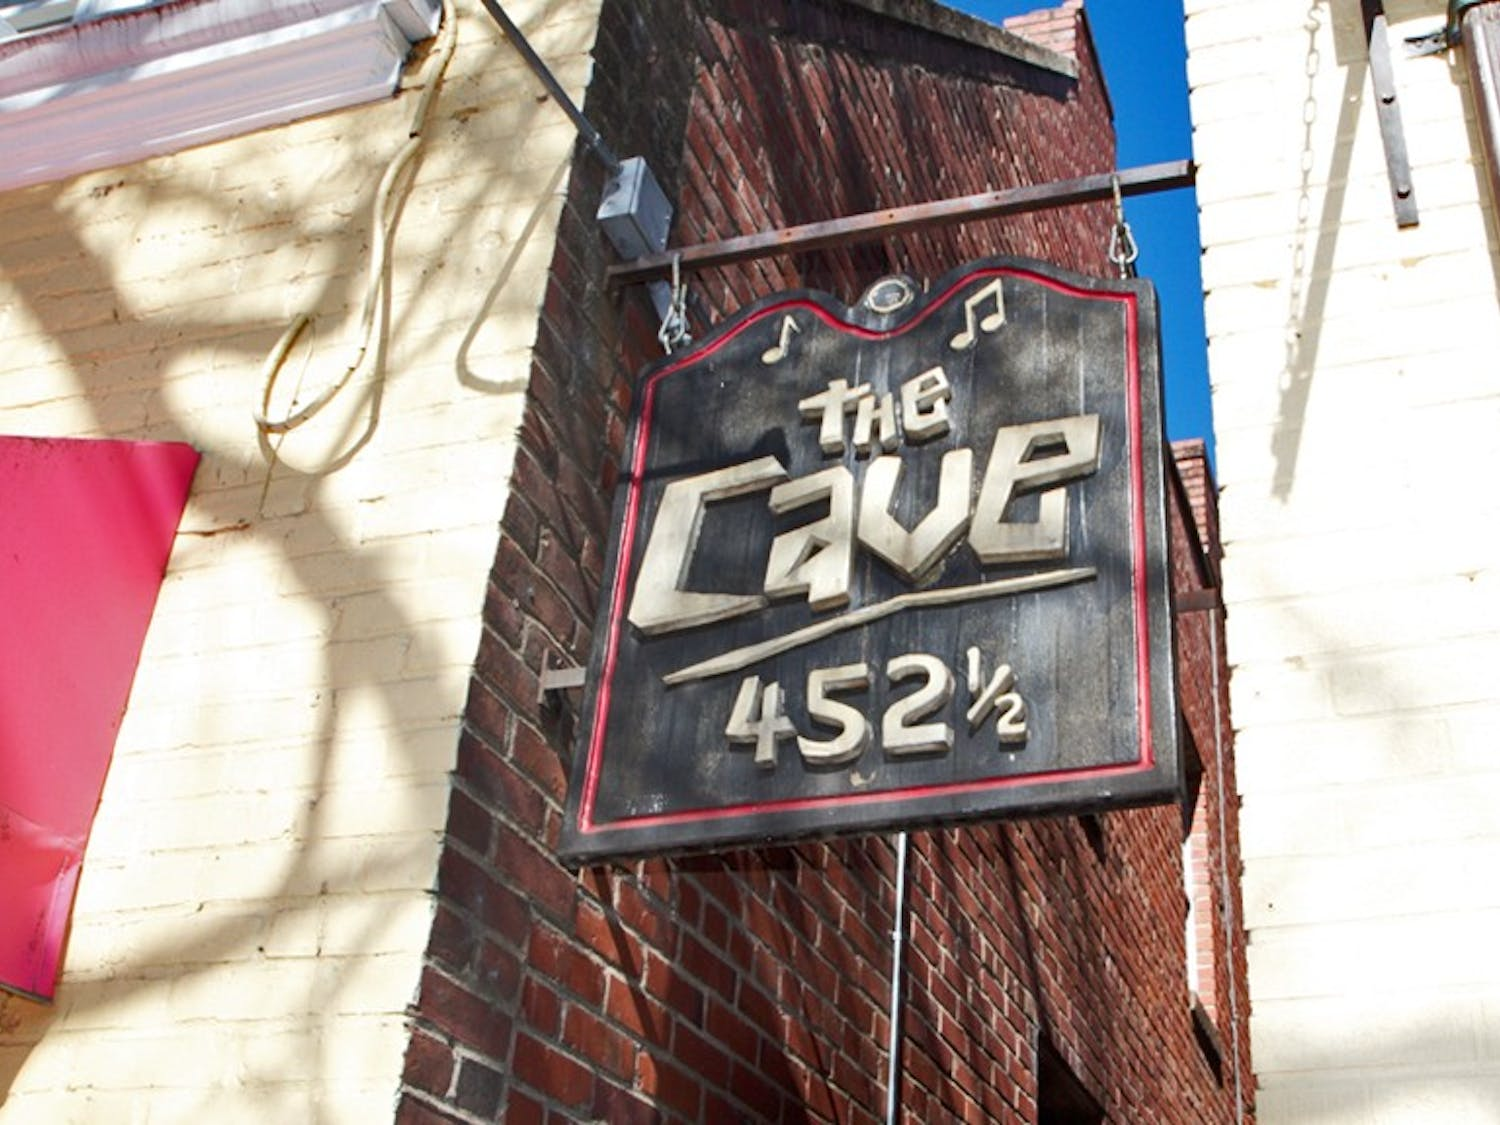 Comedy in a Cave will occur at The Cave, an underground bar on Franklin Street, on Friday, Jan. 24, 2020 at 7:30 p.m. Photo courtesy of Michelle Maclay.